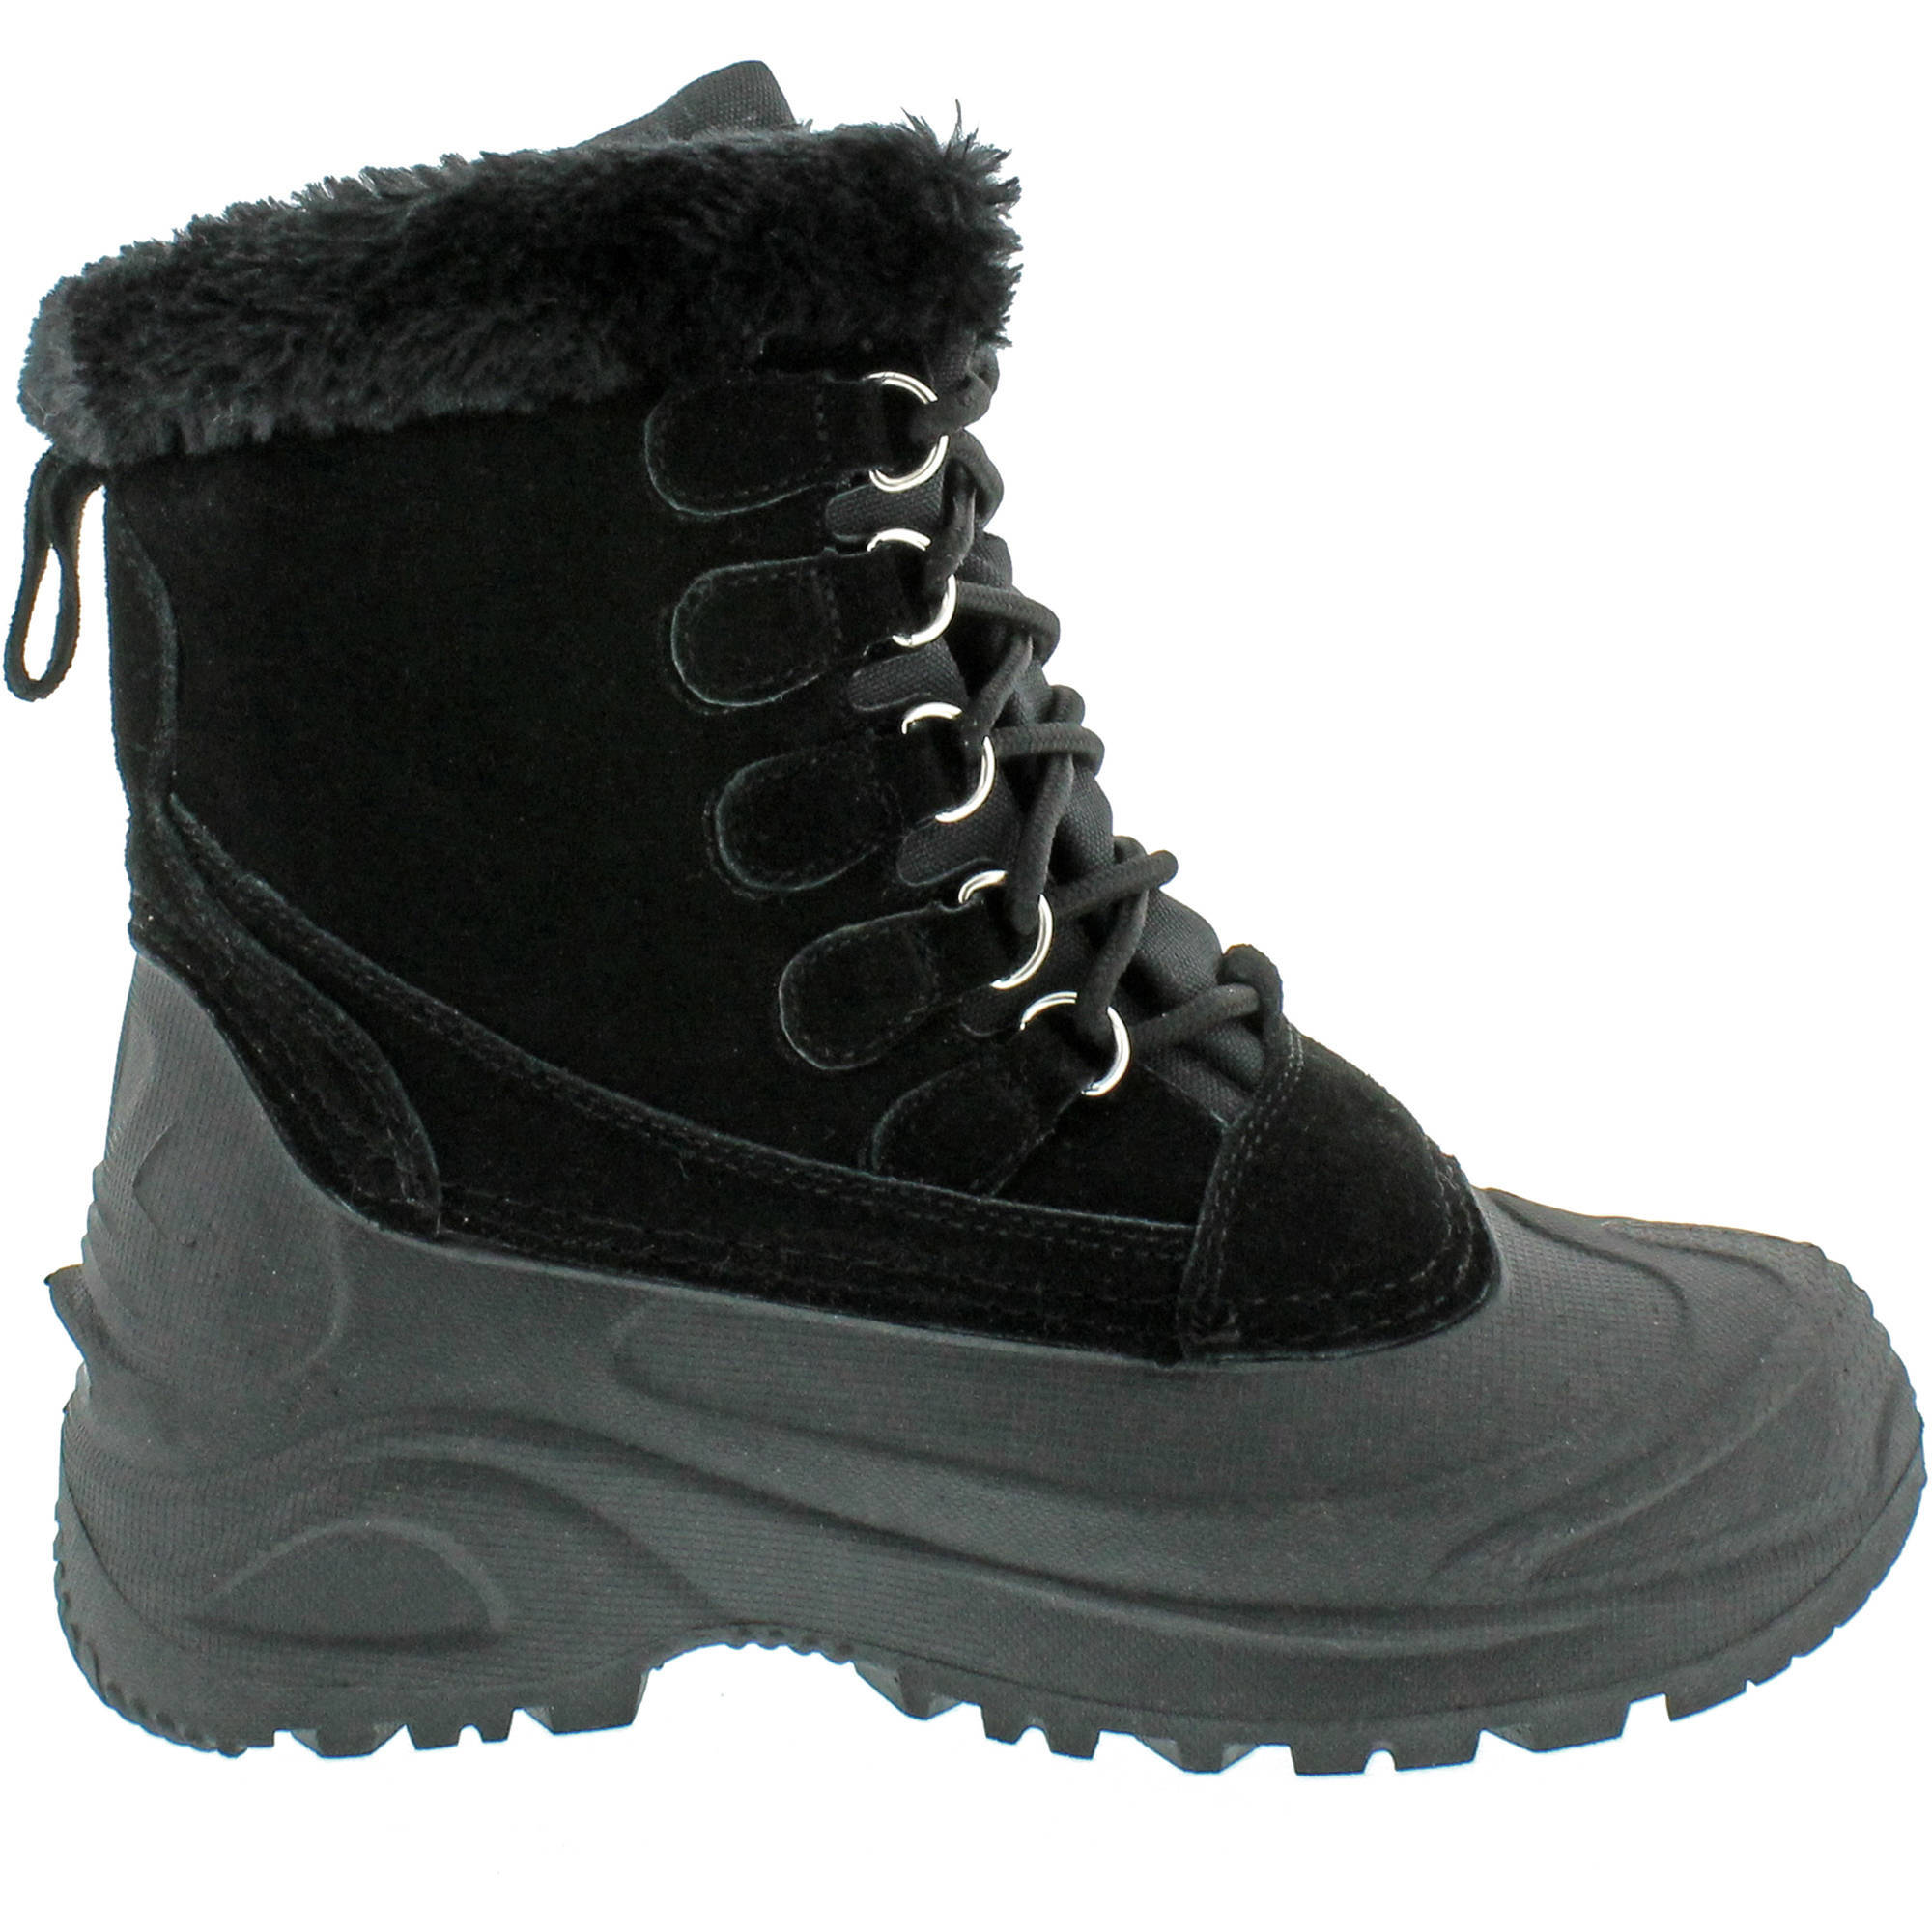 Women's Trekker Boot